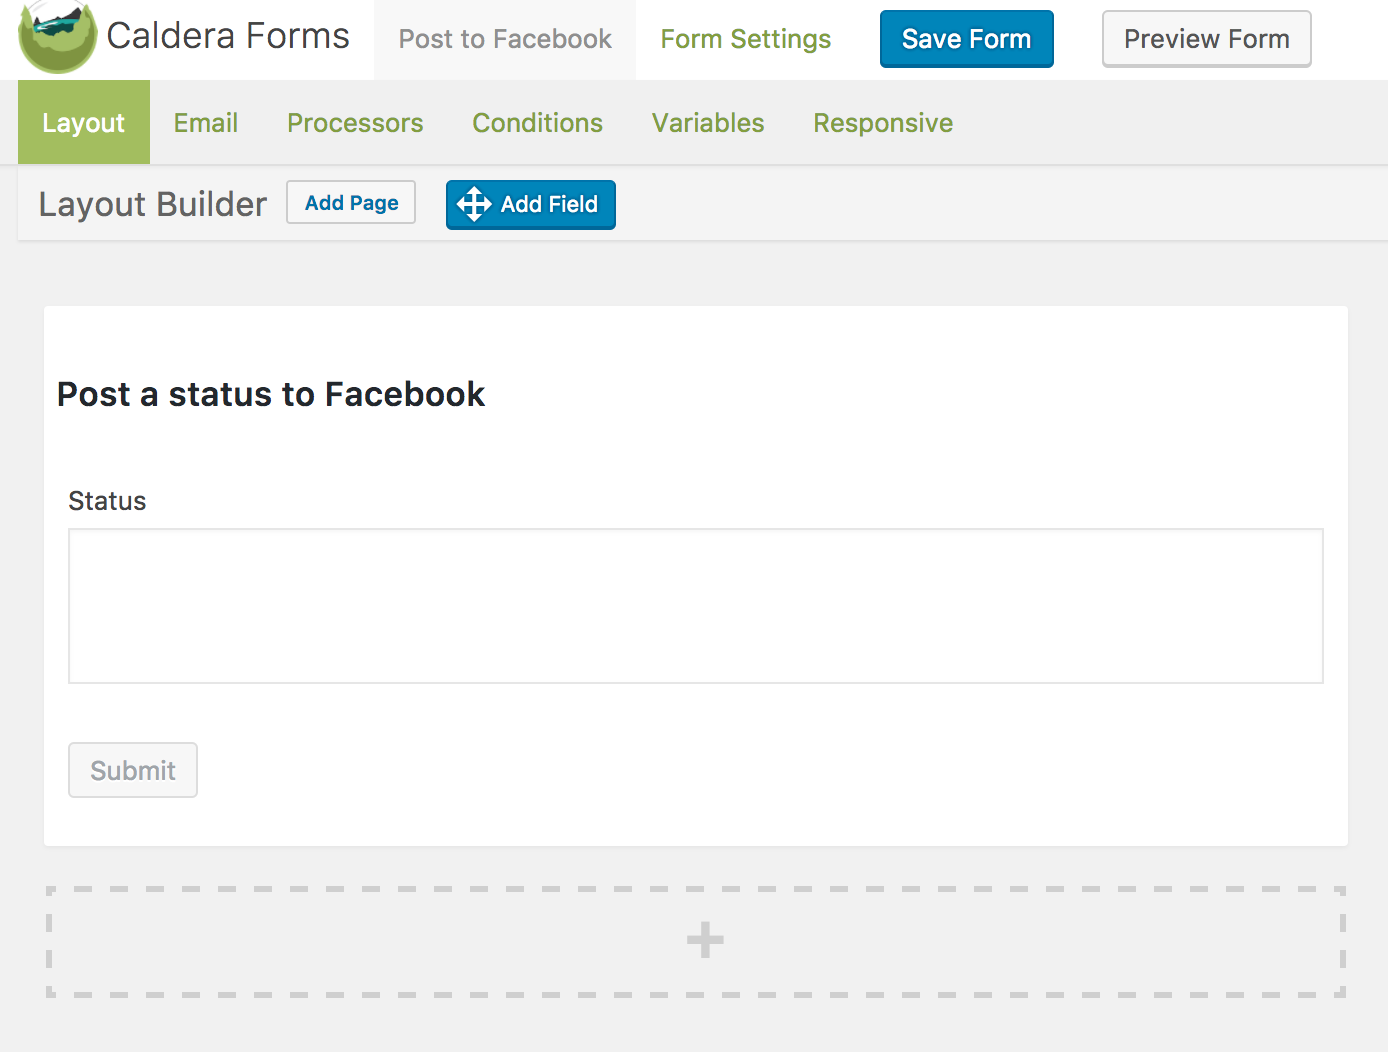 Caldera Form example for posting a status to Facebook with Zapier add-on.